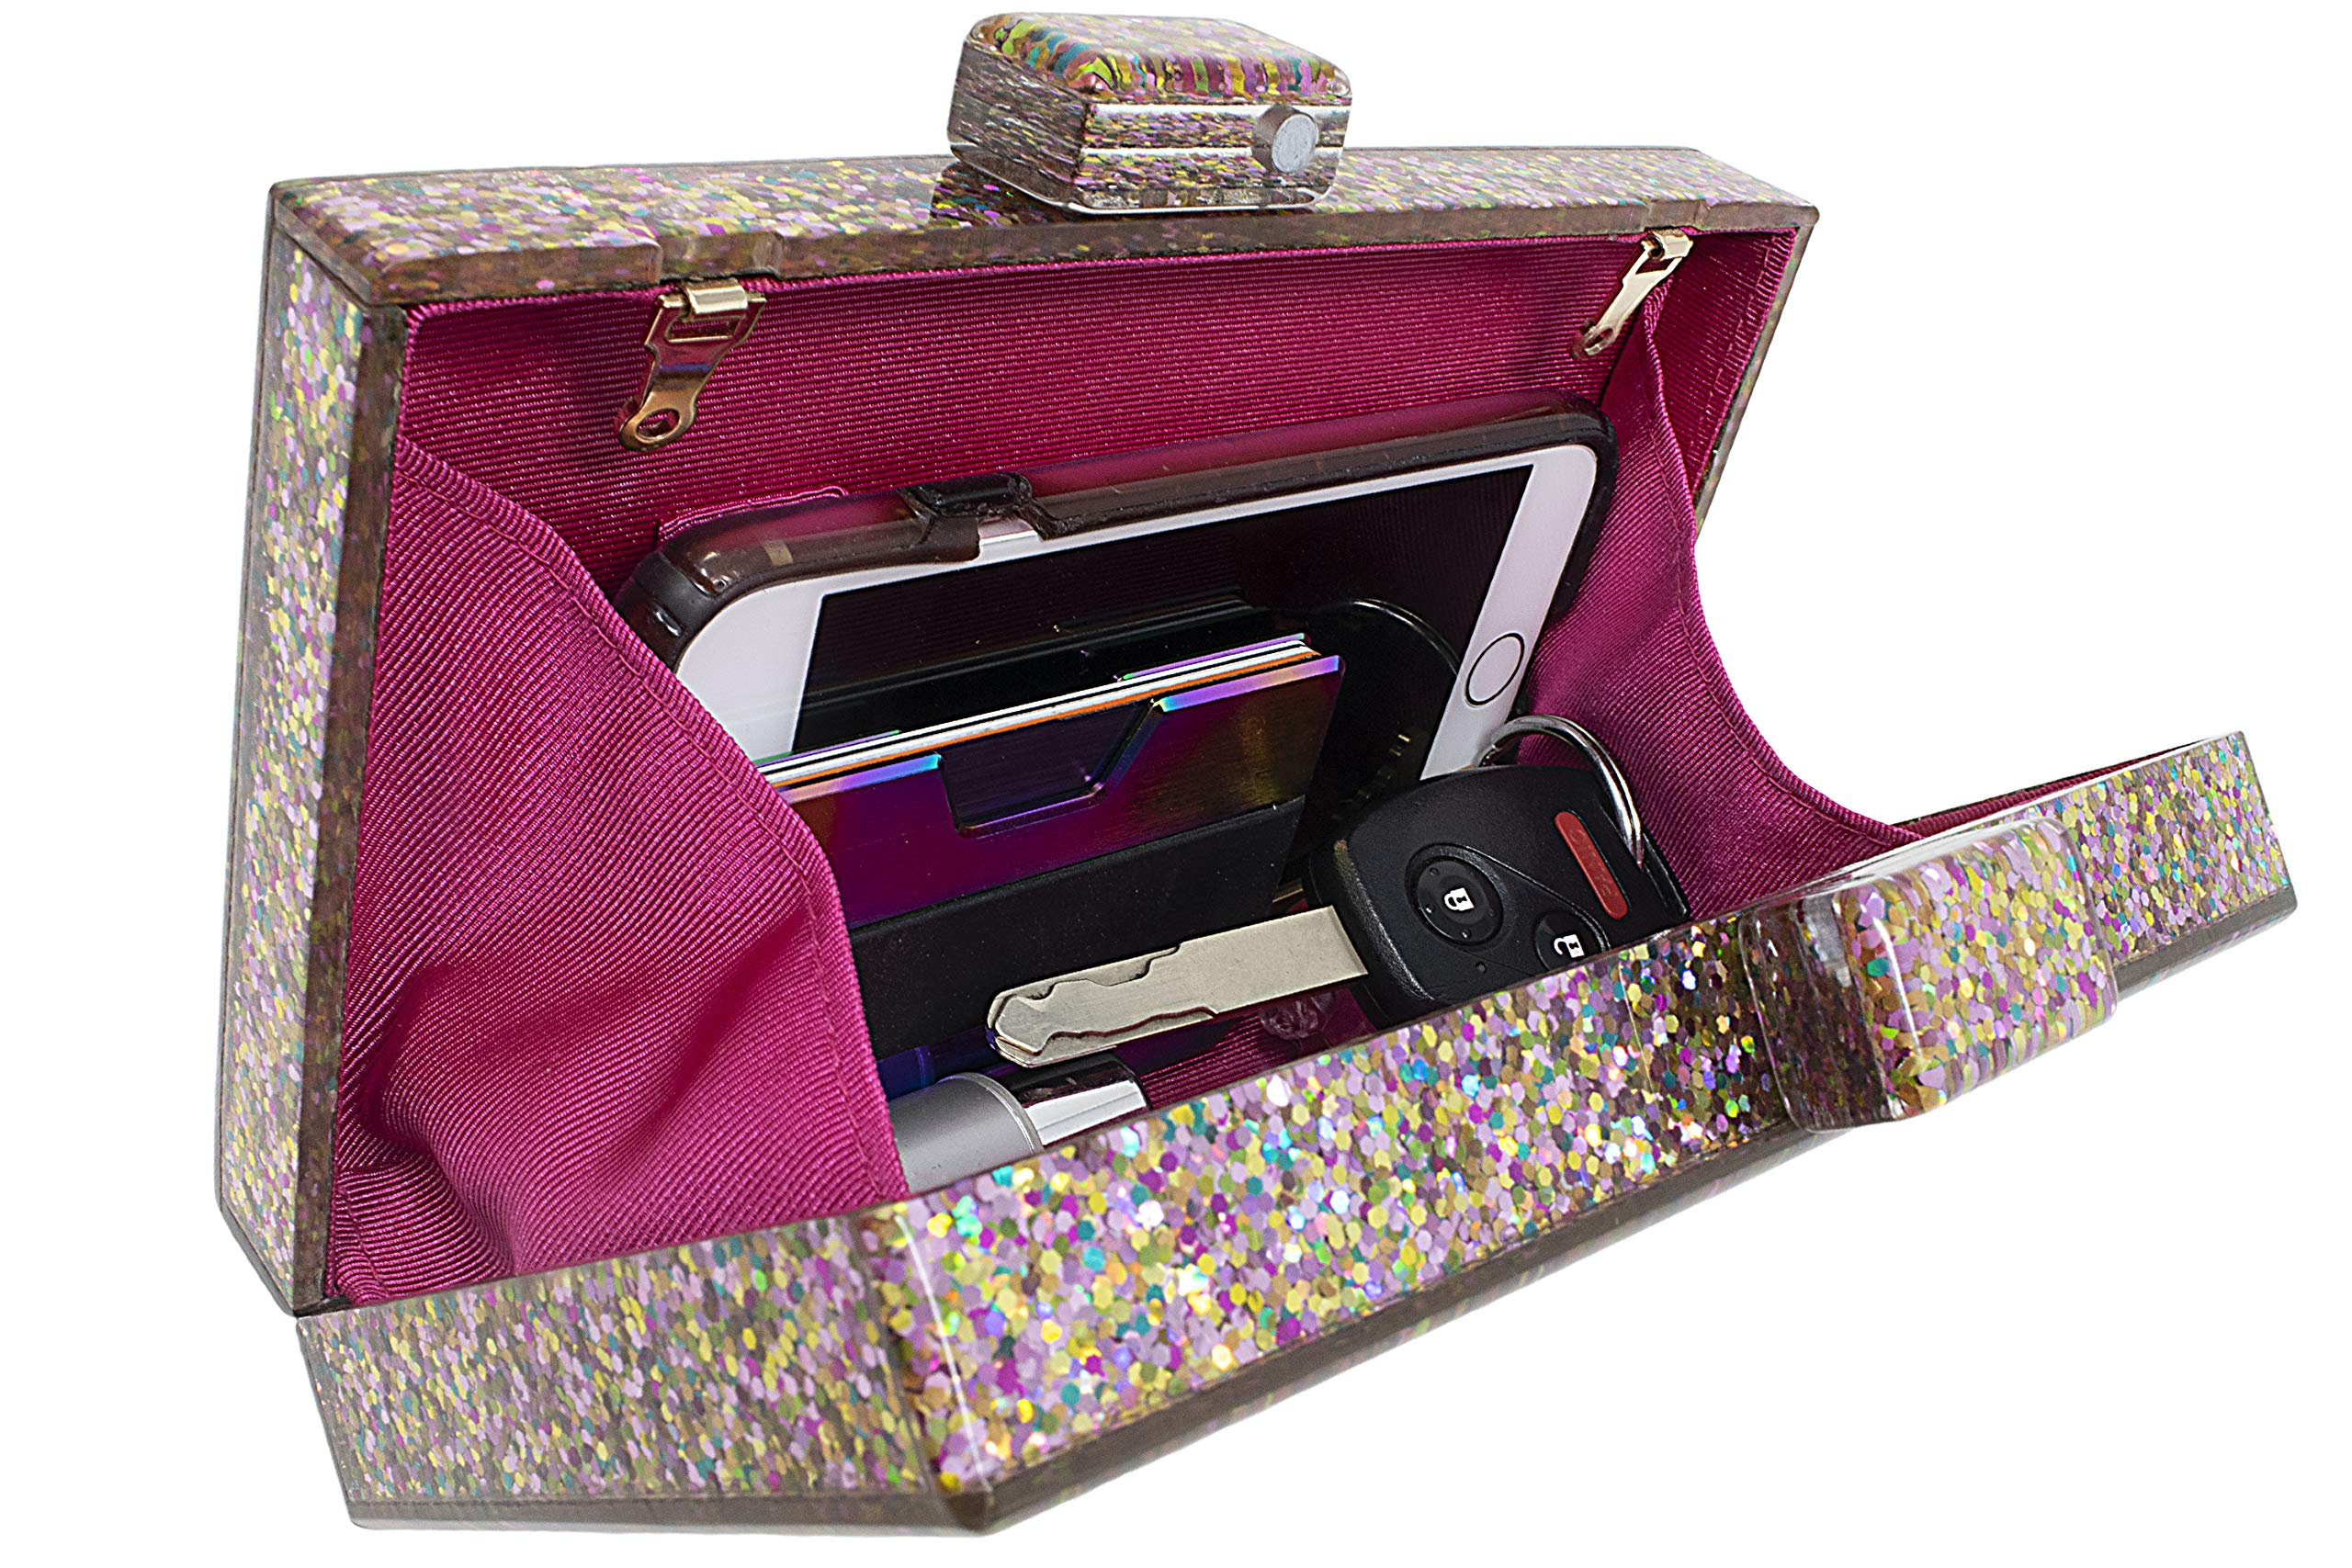 BG-713-G65 Box Clutch Crossbody Hard Case Purse Evening Bag - Glitter Rose Gold by Funky Junque (Image #3)